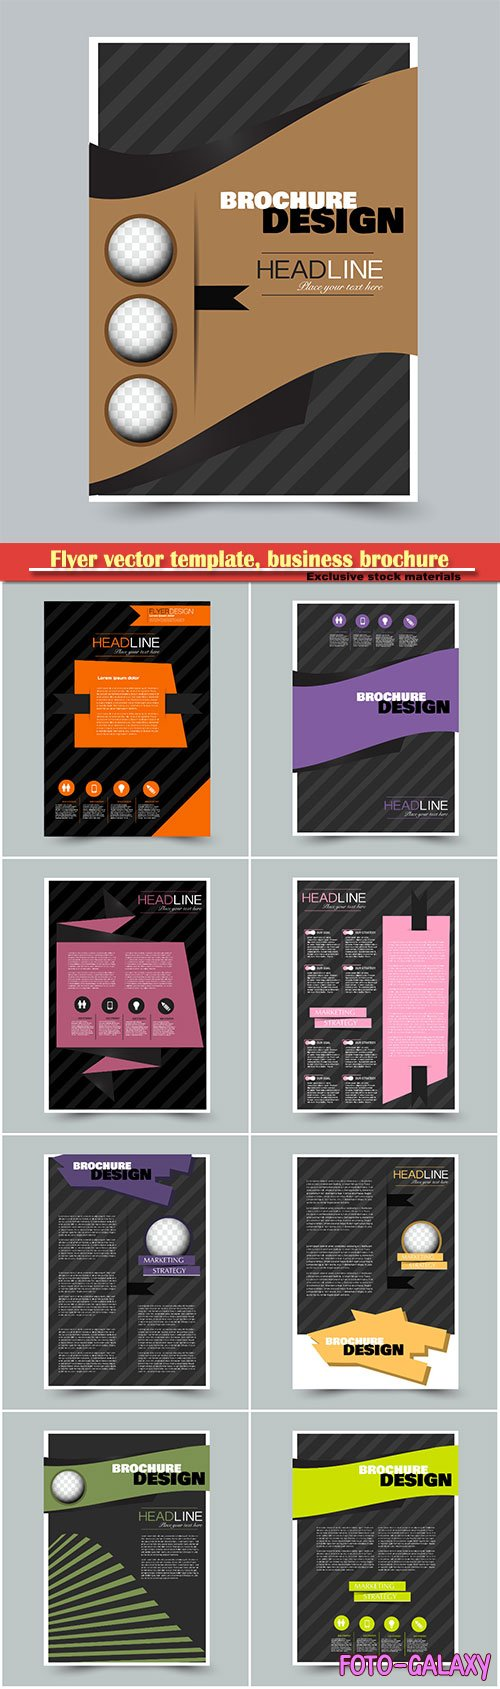 Flyer vector template, business brochure, magazine cover # 16